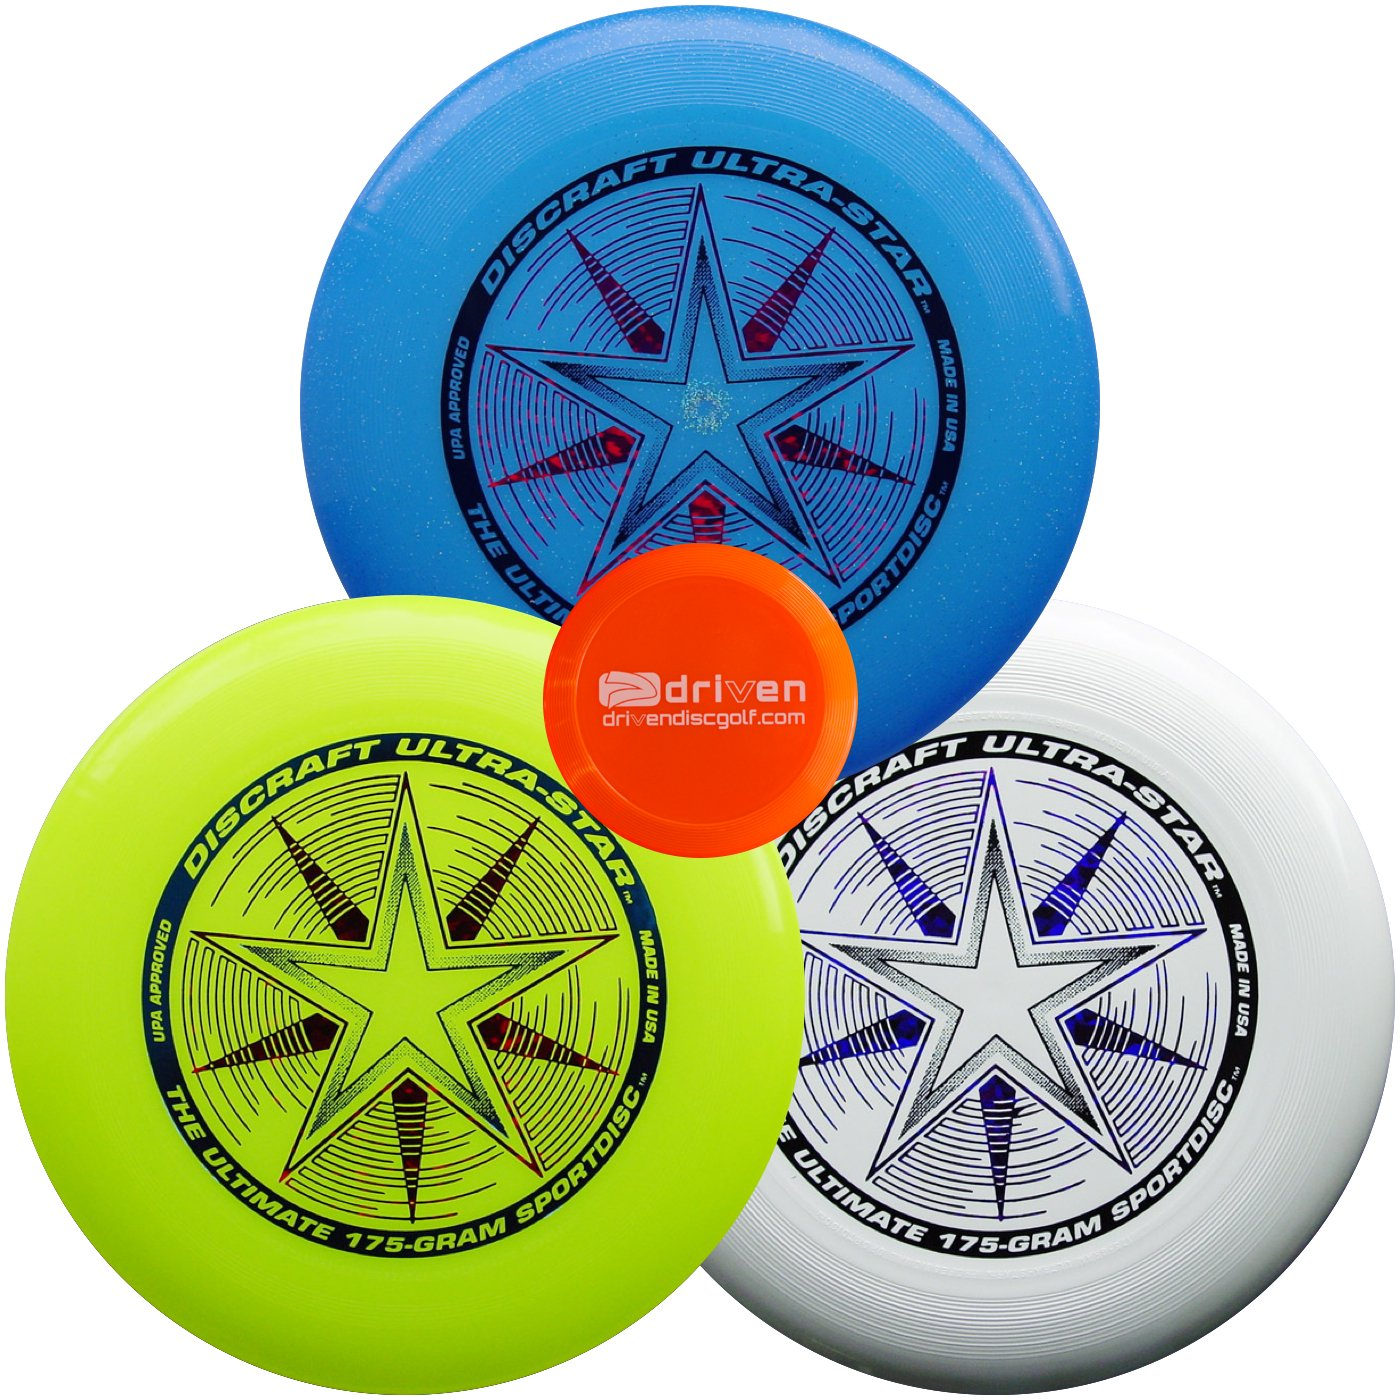 Discraft Ultimate Disc Bundle - Set of 3 175g Ultra Stars (White - Yellow - Blue Sparkle) by Discraft